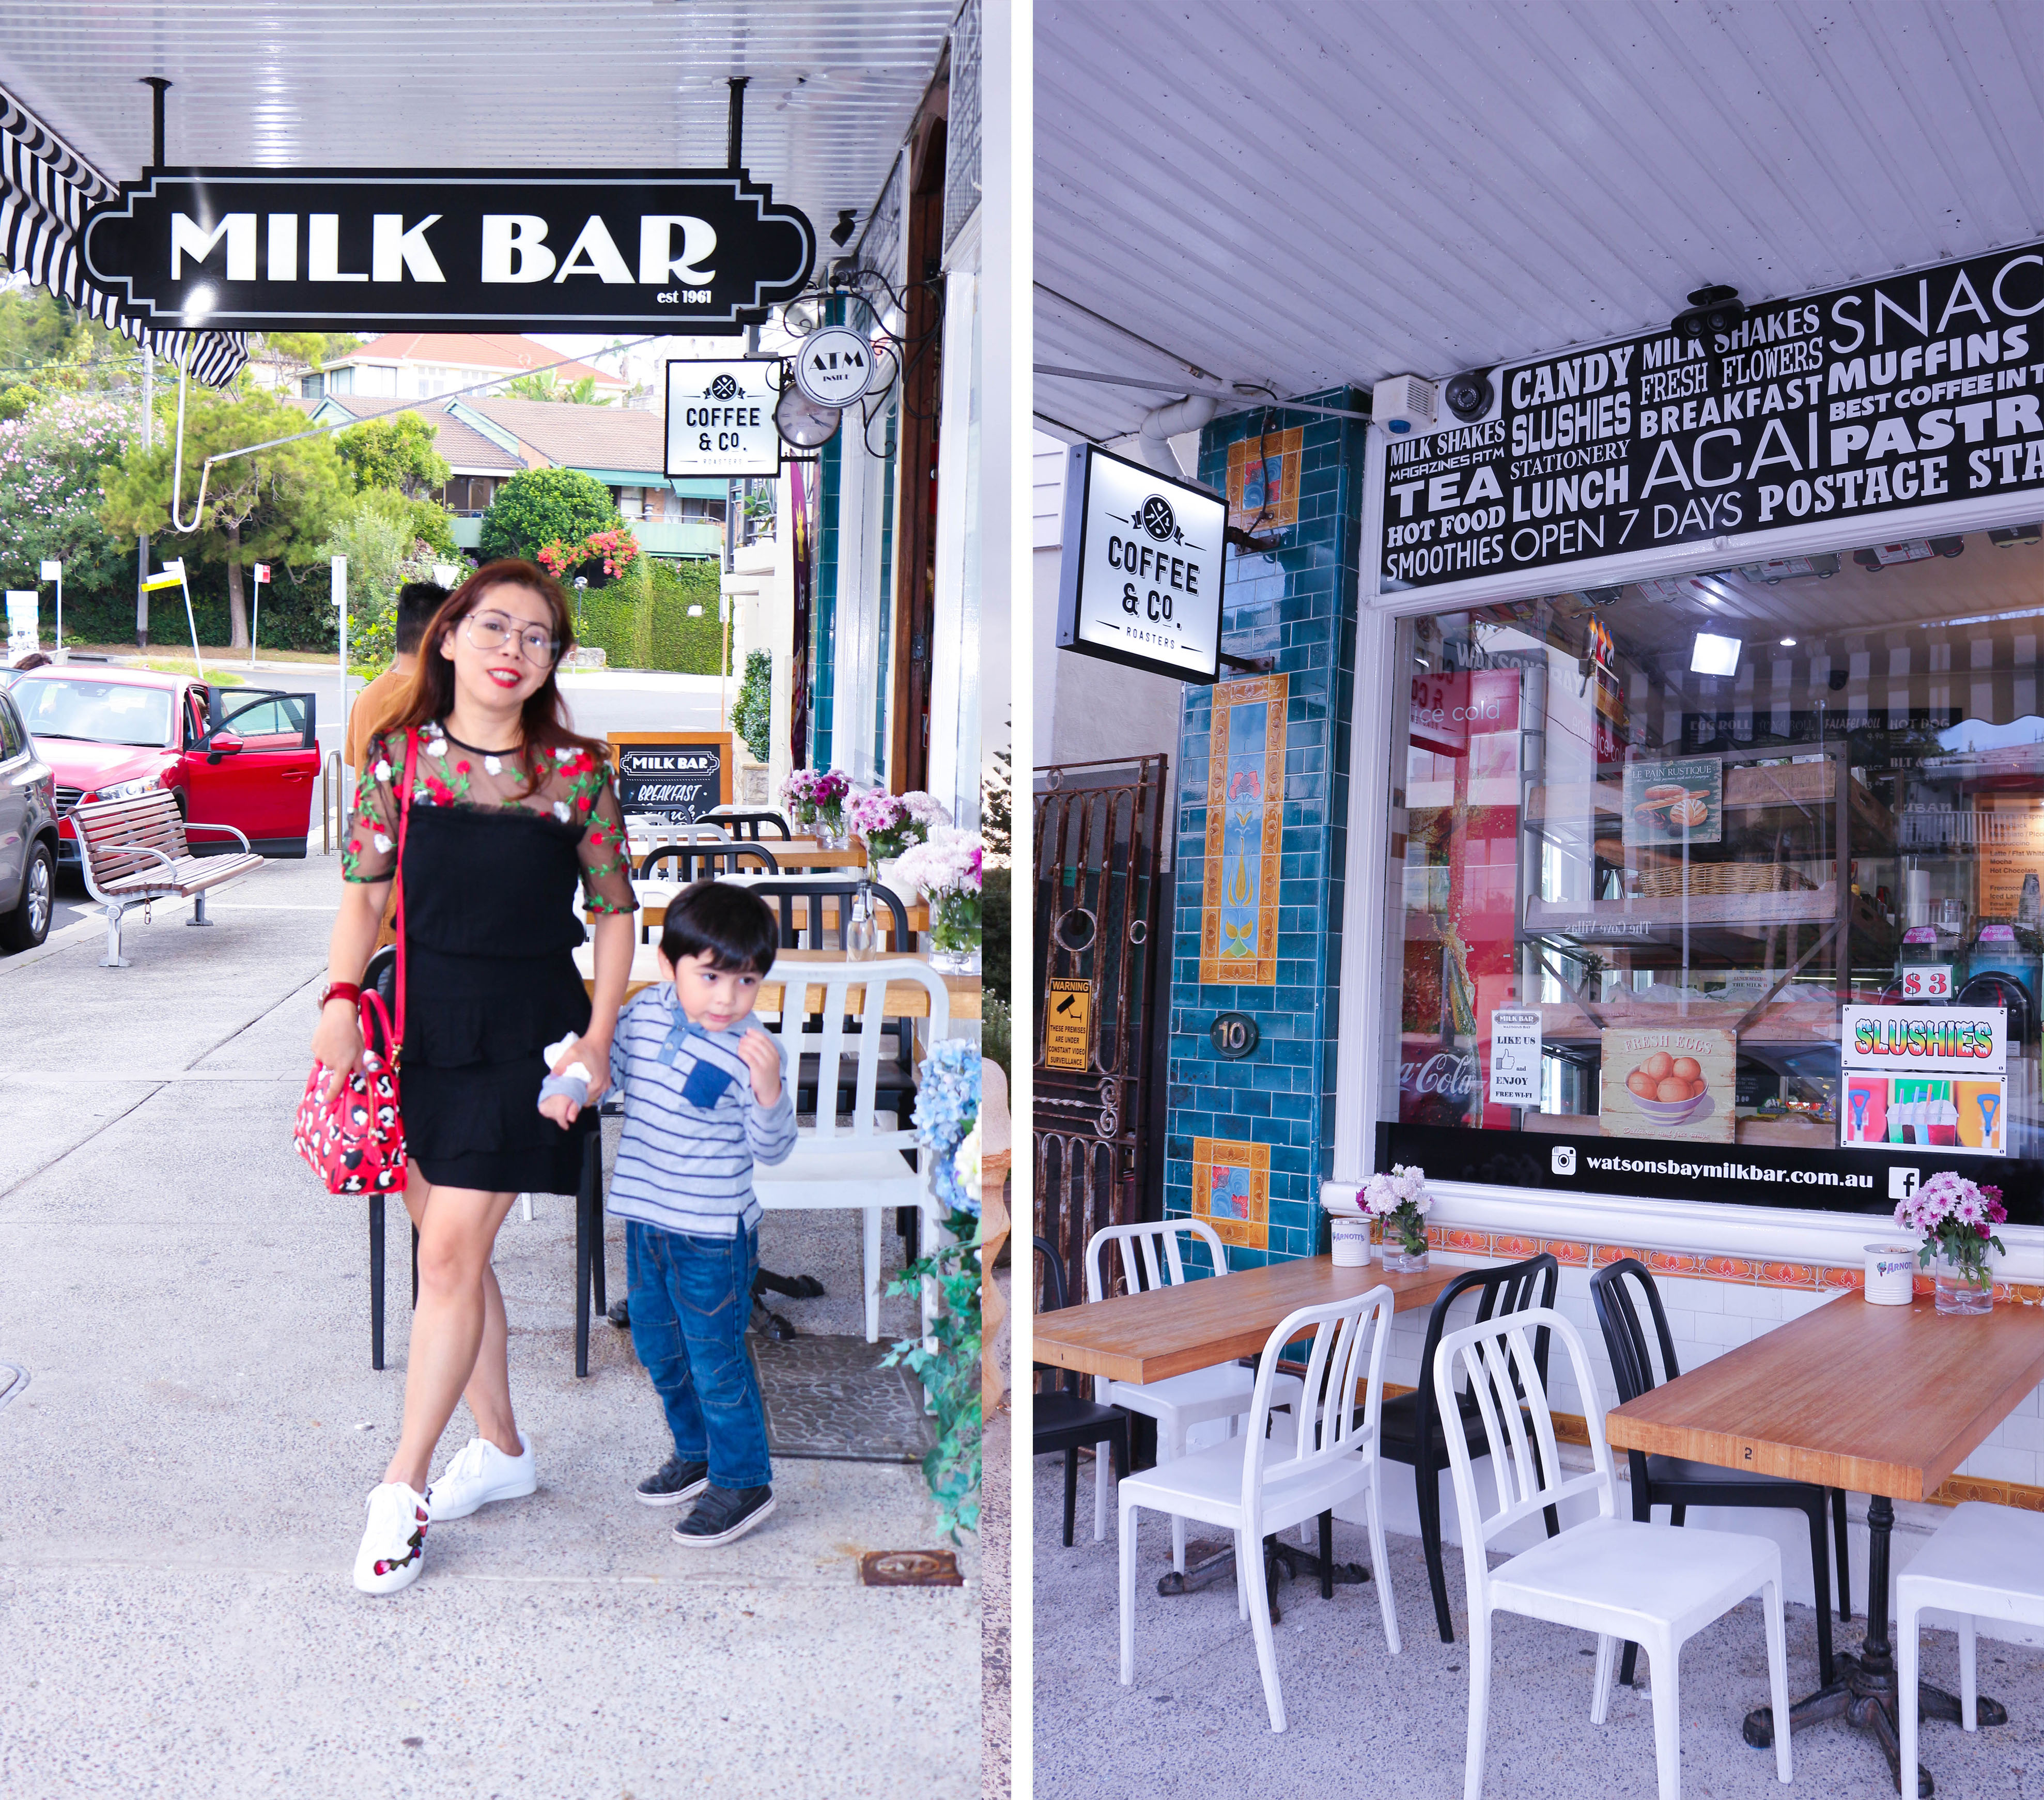 Milk bar Watsons Bay